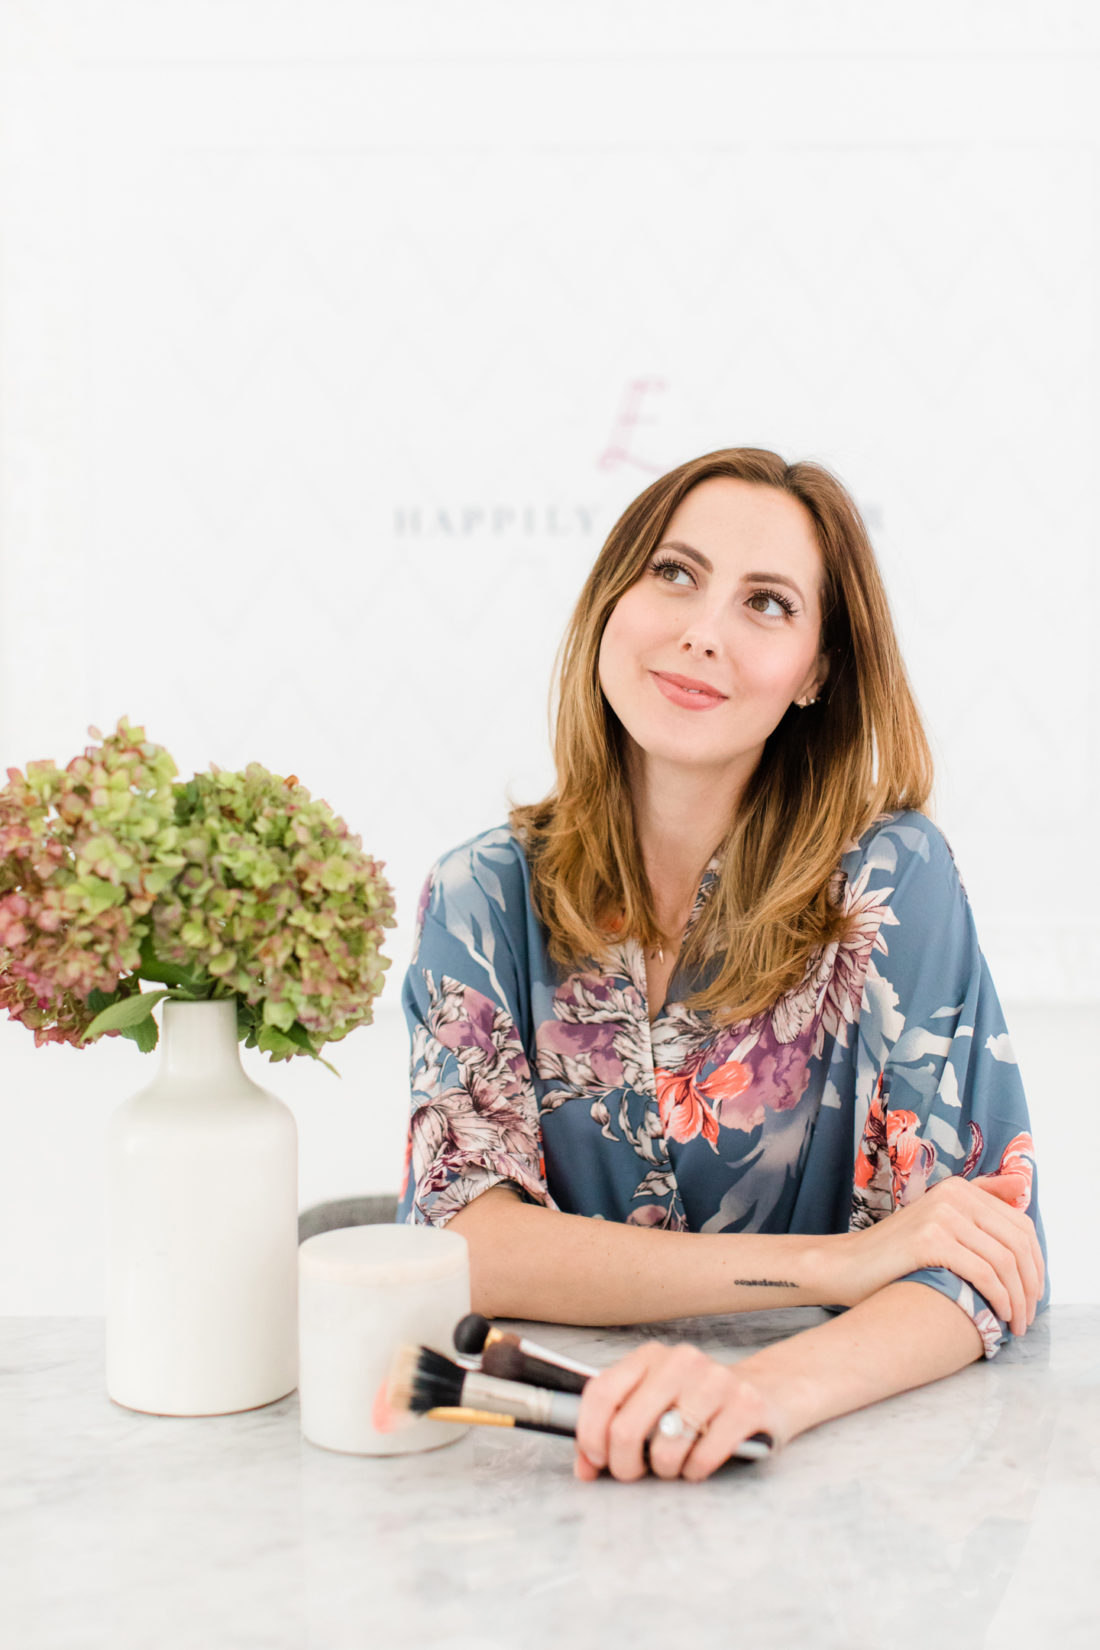 Eva Amurri Martino shares her photoshoot makeup look tutorial that she uses when capturing photographs for the blog